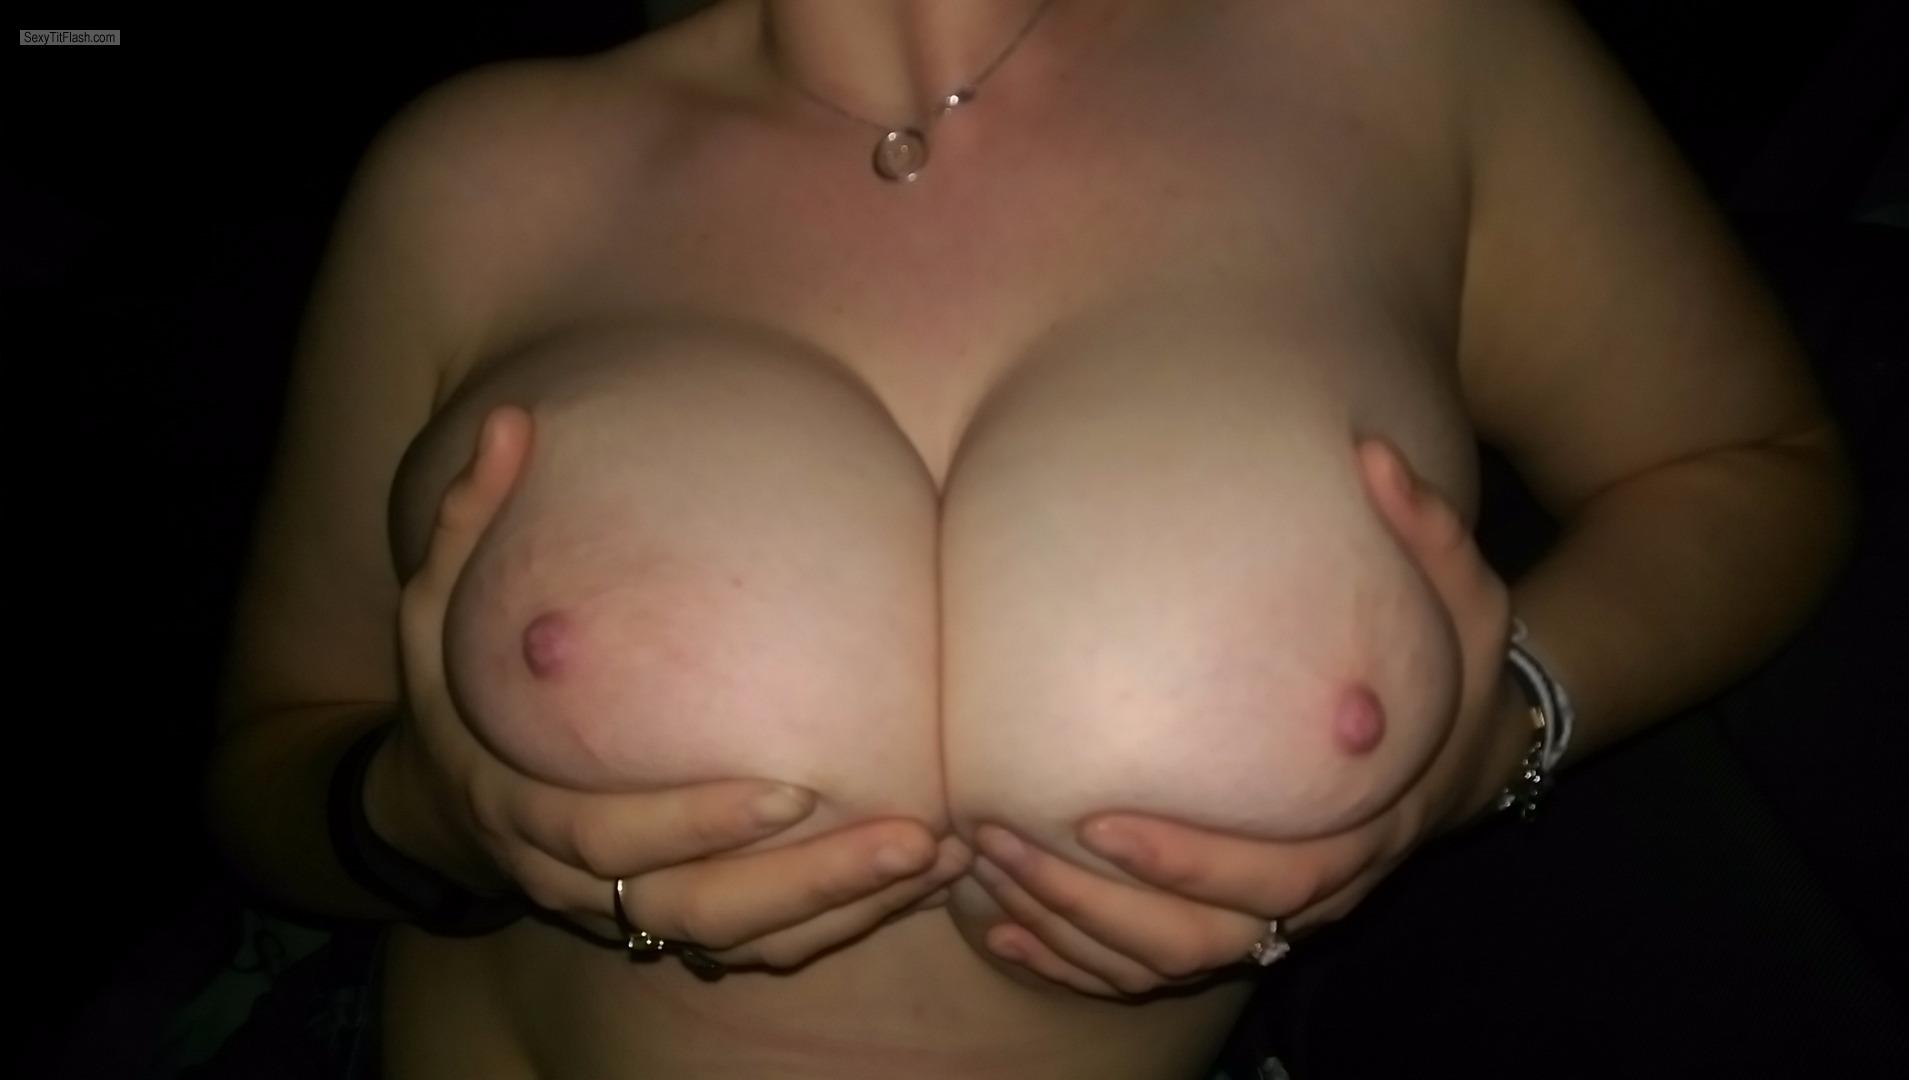 Tit Flash: Girlfriend's Extremely Big Tits - JJ Cup from United States